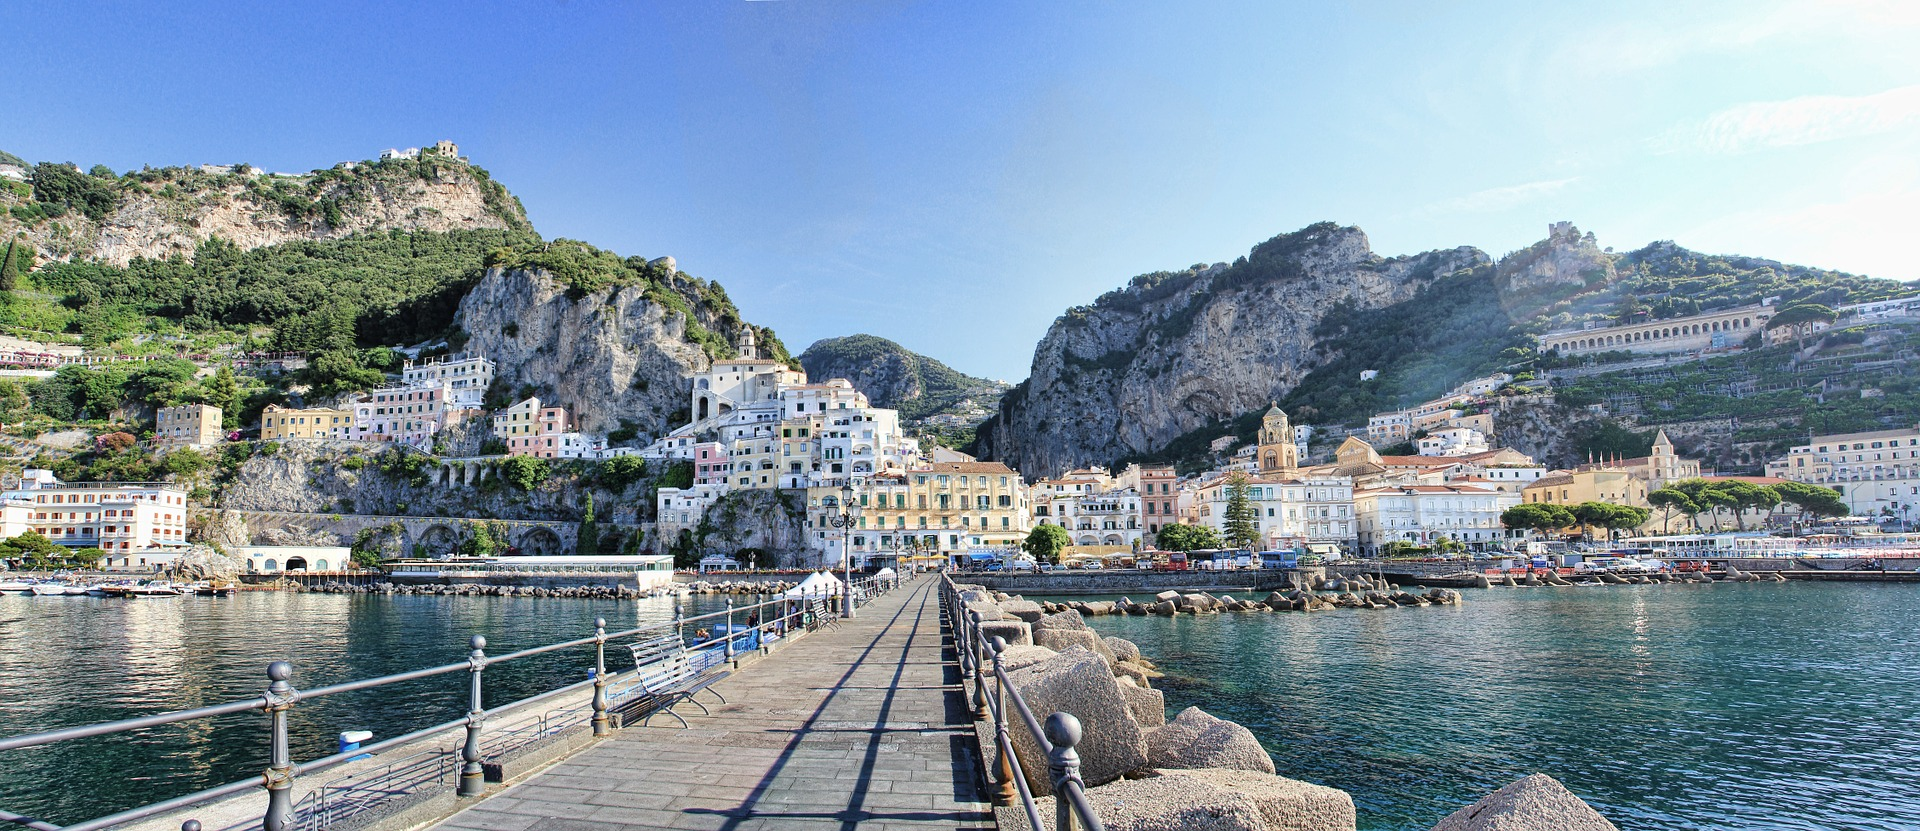 The Amalfi Coast is a great setting for a photobooth.